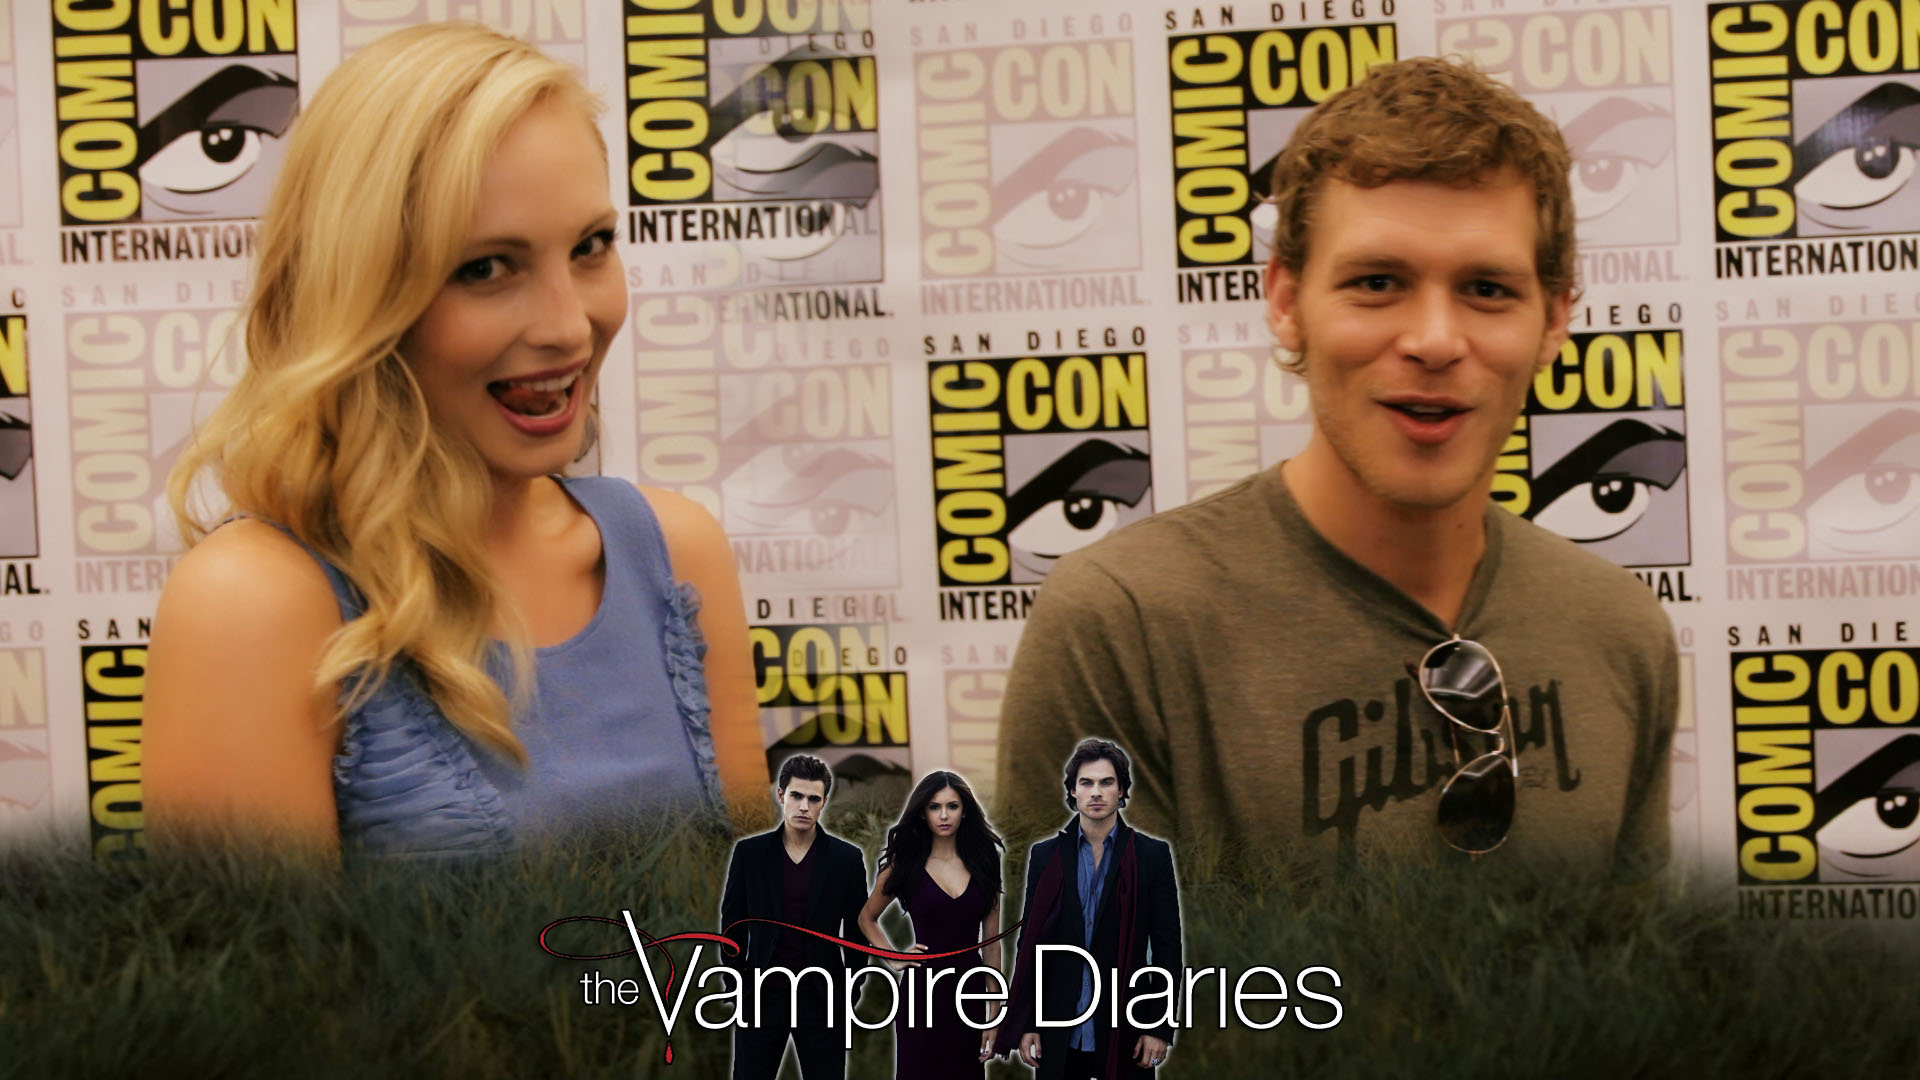 joseph dating Joseph morgan was recently spotted cuddling up to vampire diaries co-star persia white could the two possibly be dating.